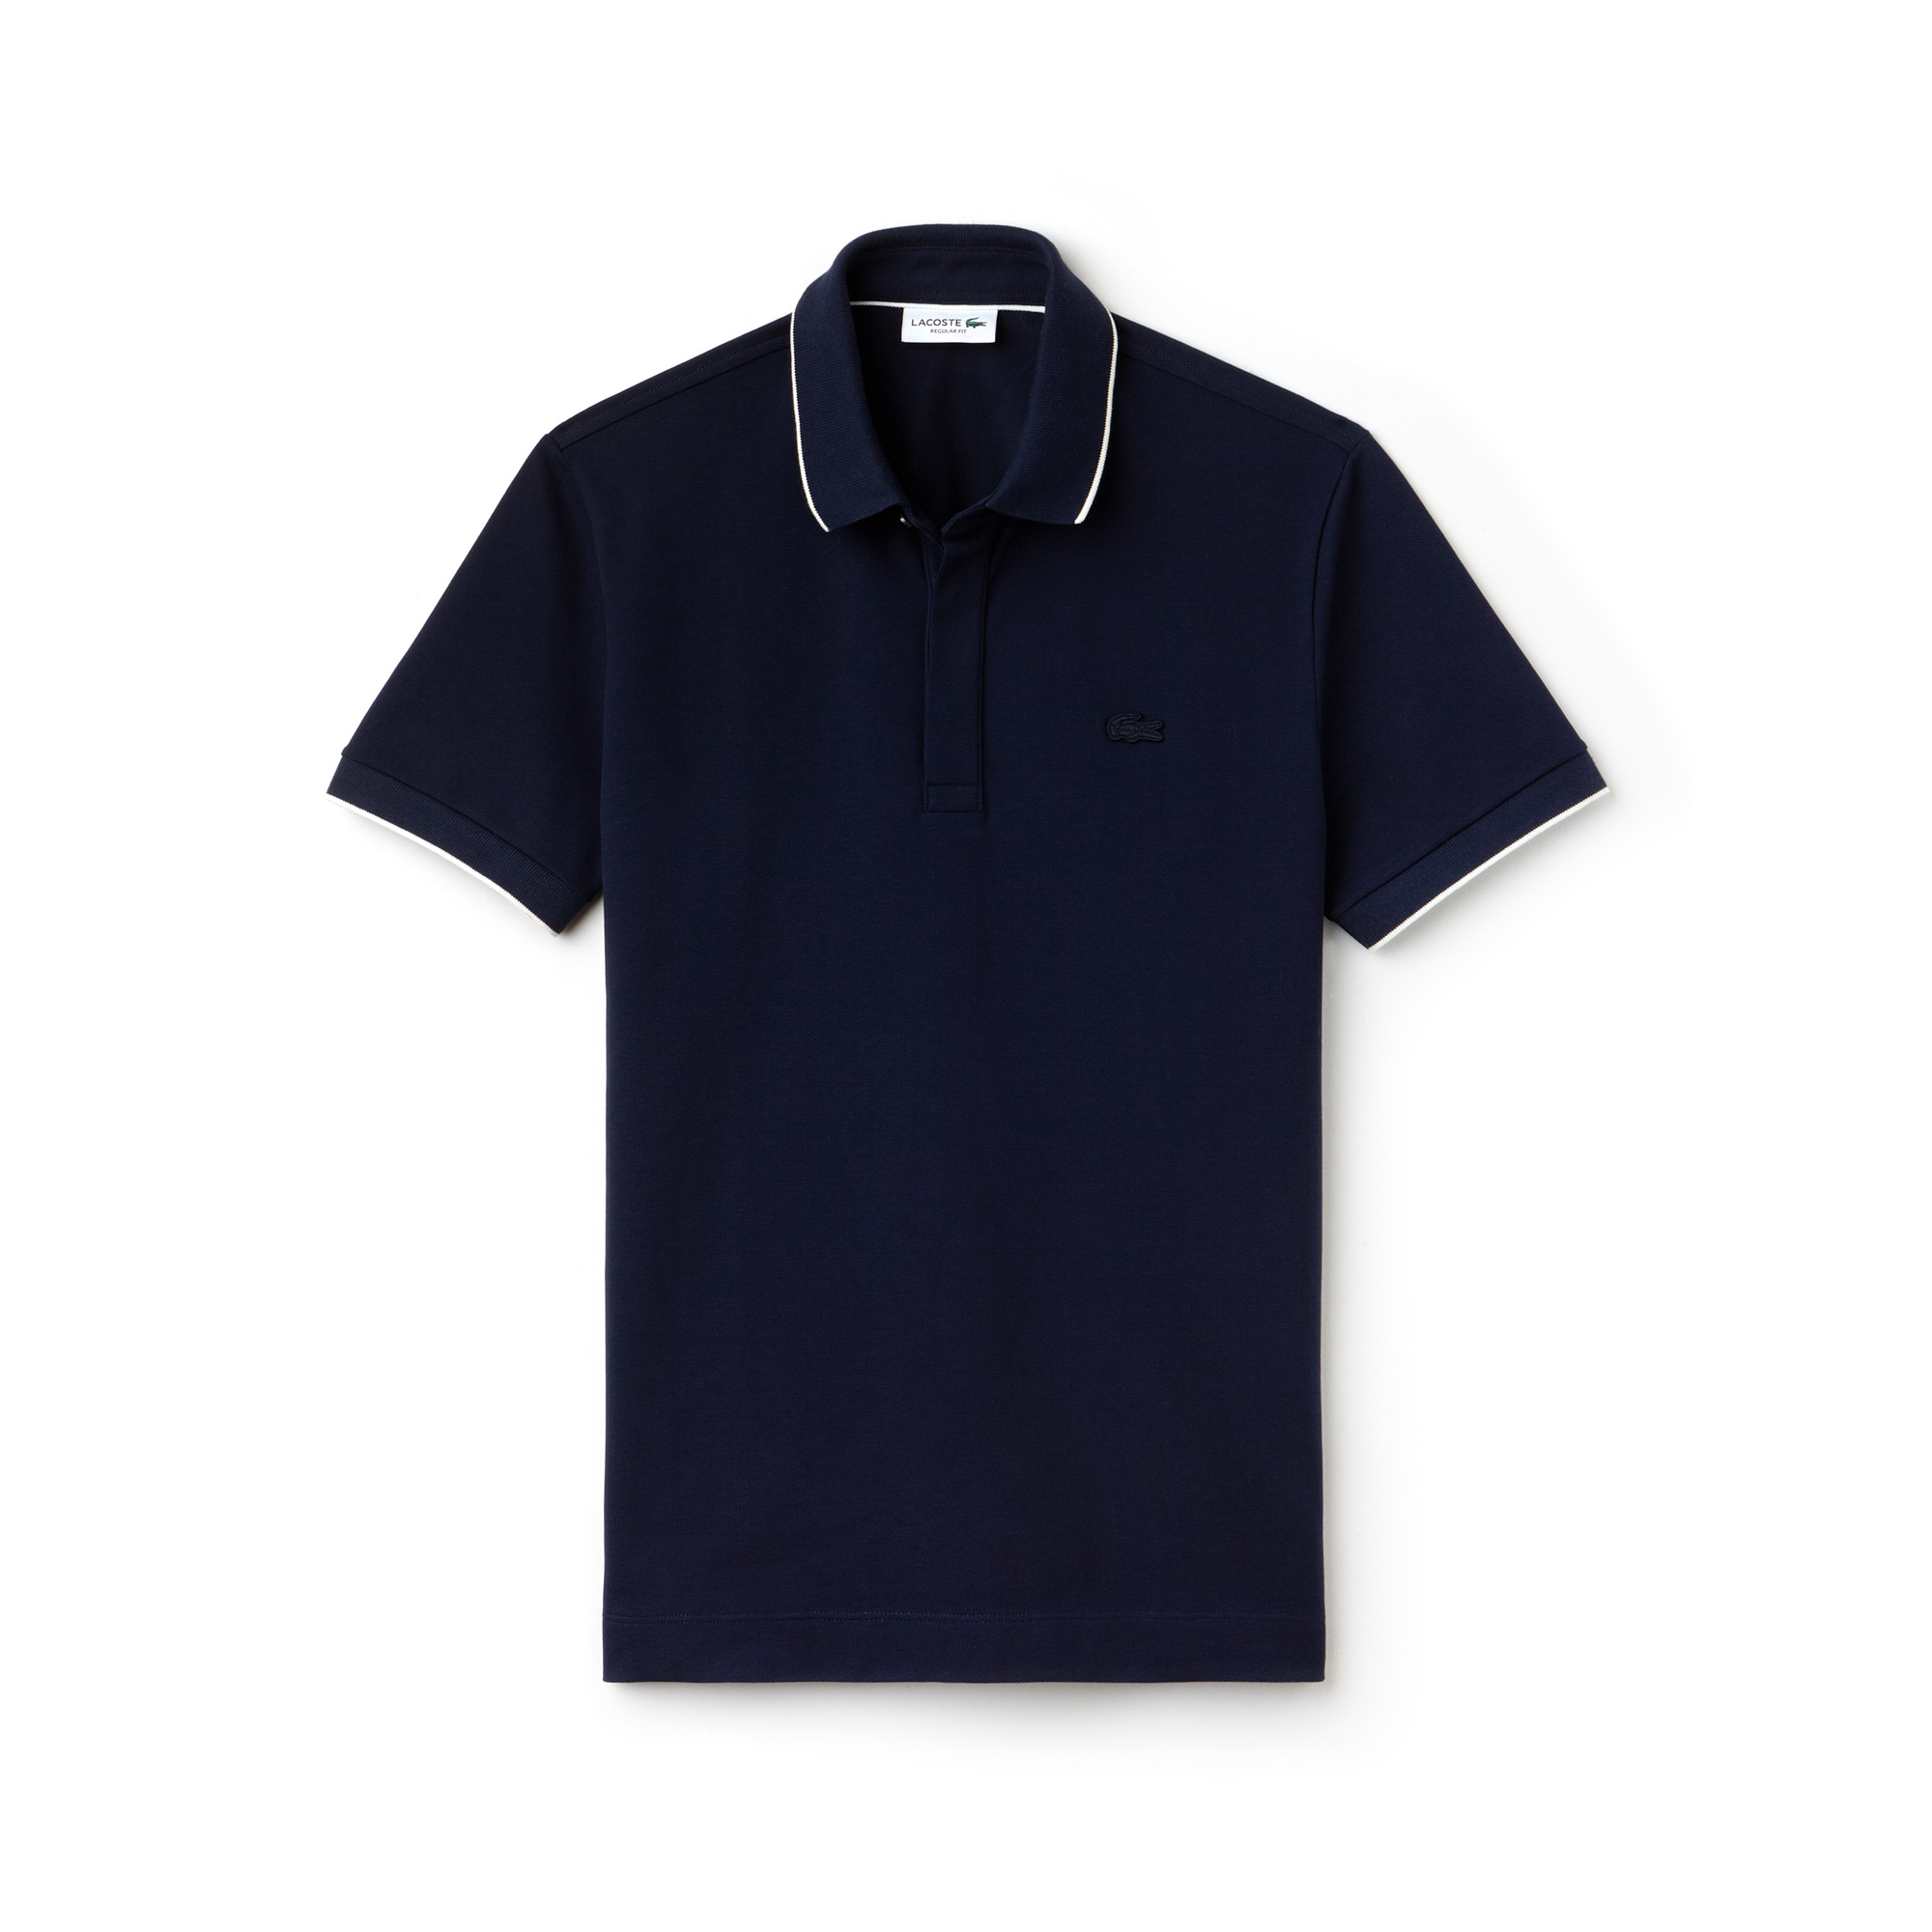 라코스테 Lacoste Mens Regular Fit Piped Stretch Pique Polo,navy blue/cake flour whit